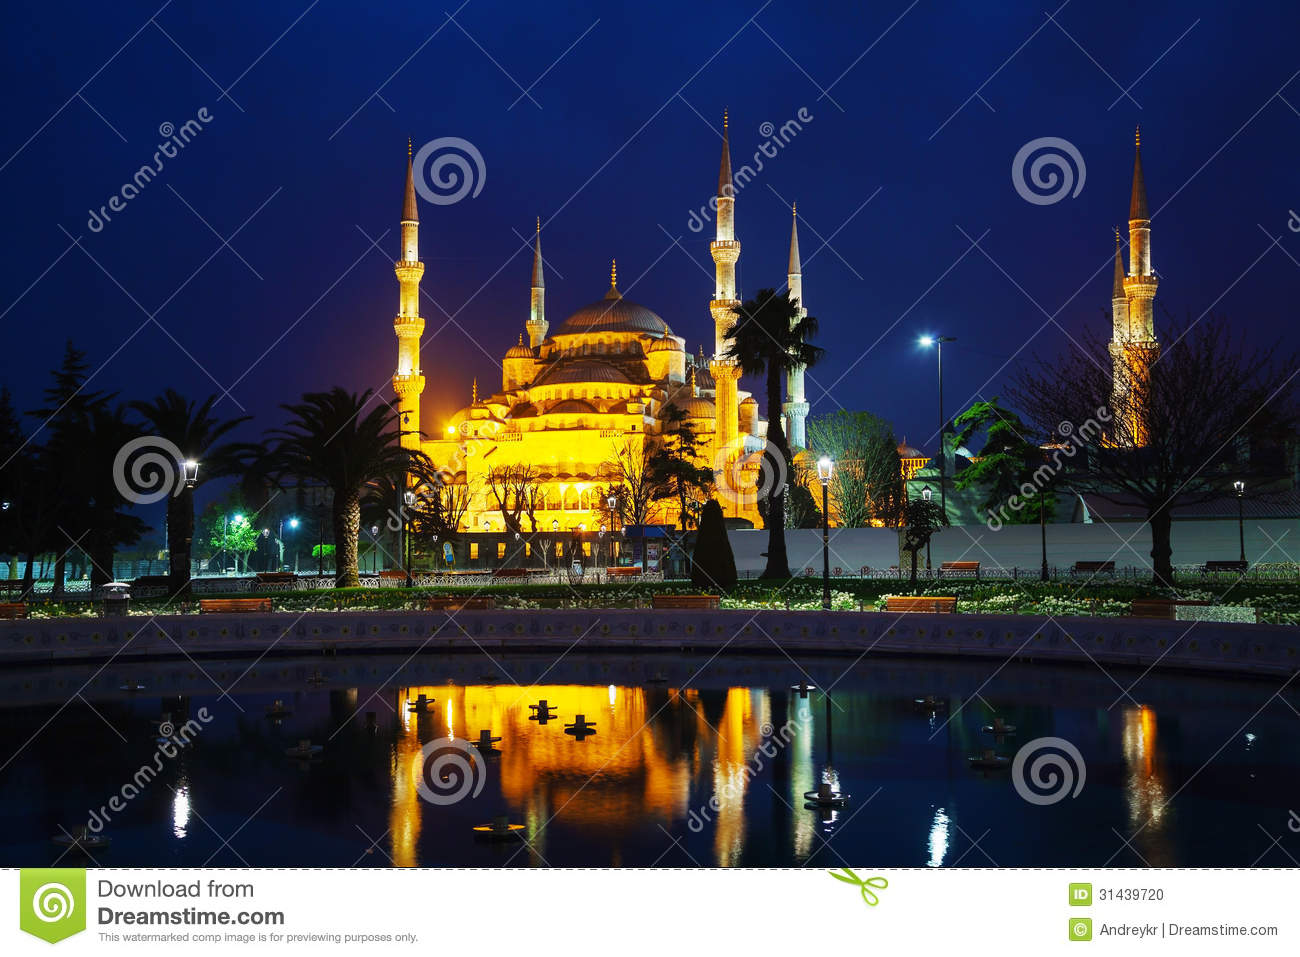 Download Sultan Ahmed Mosque (Blue Mosque) In Istanbul Stock Photo - Image of istanbul, europe: 31439720